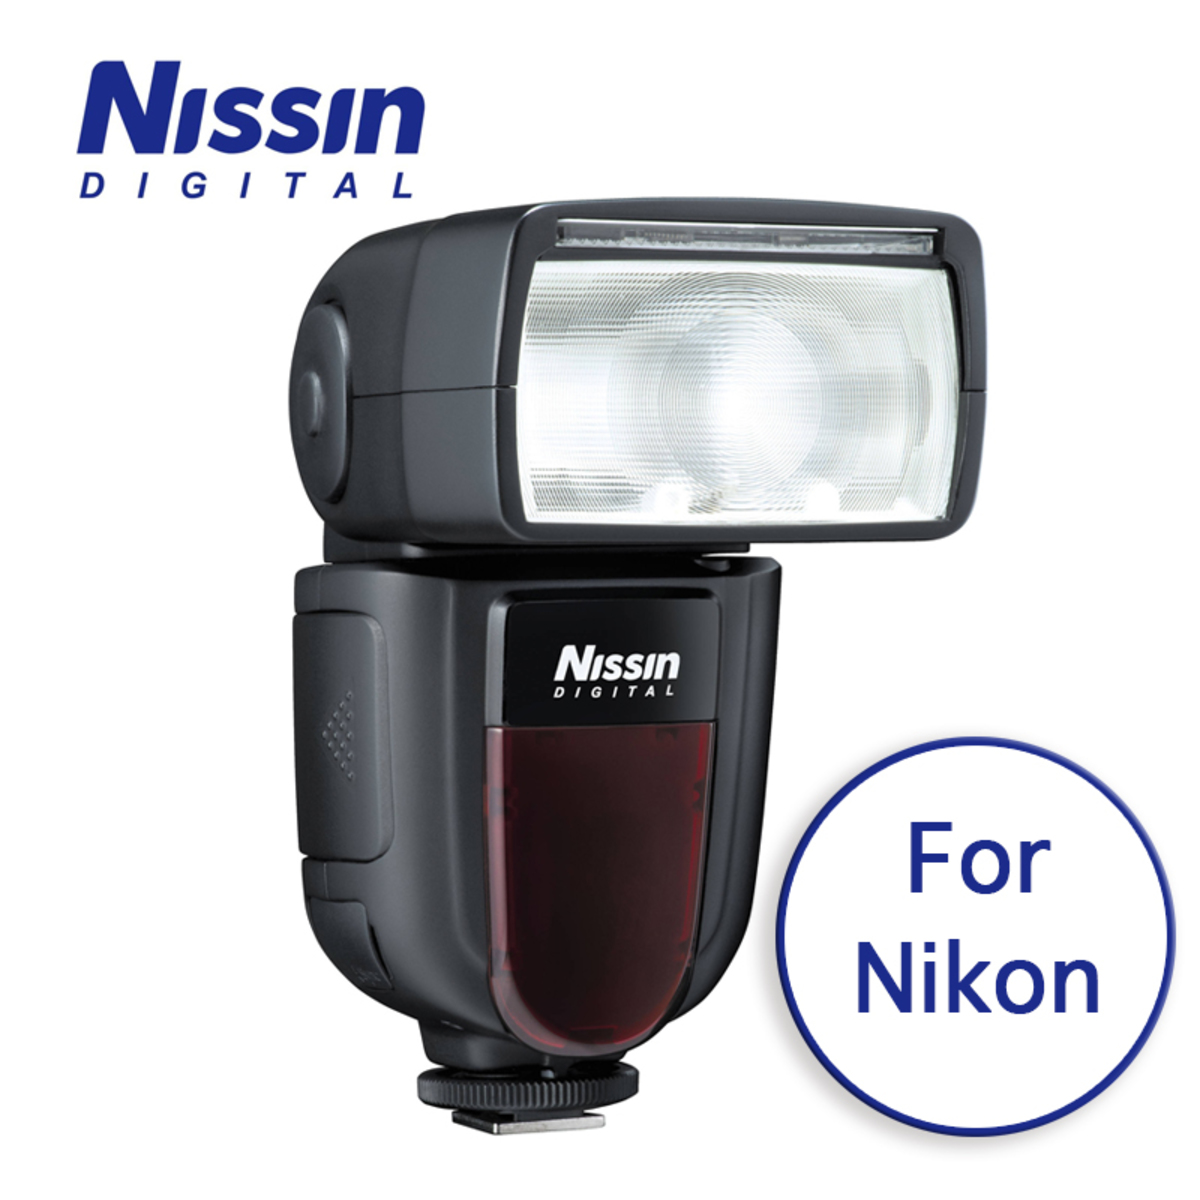 Nissin Di700 Flashgun閃光燈  for Nikon 平行進口